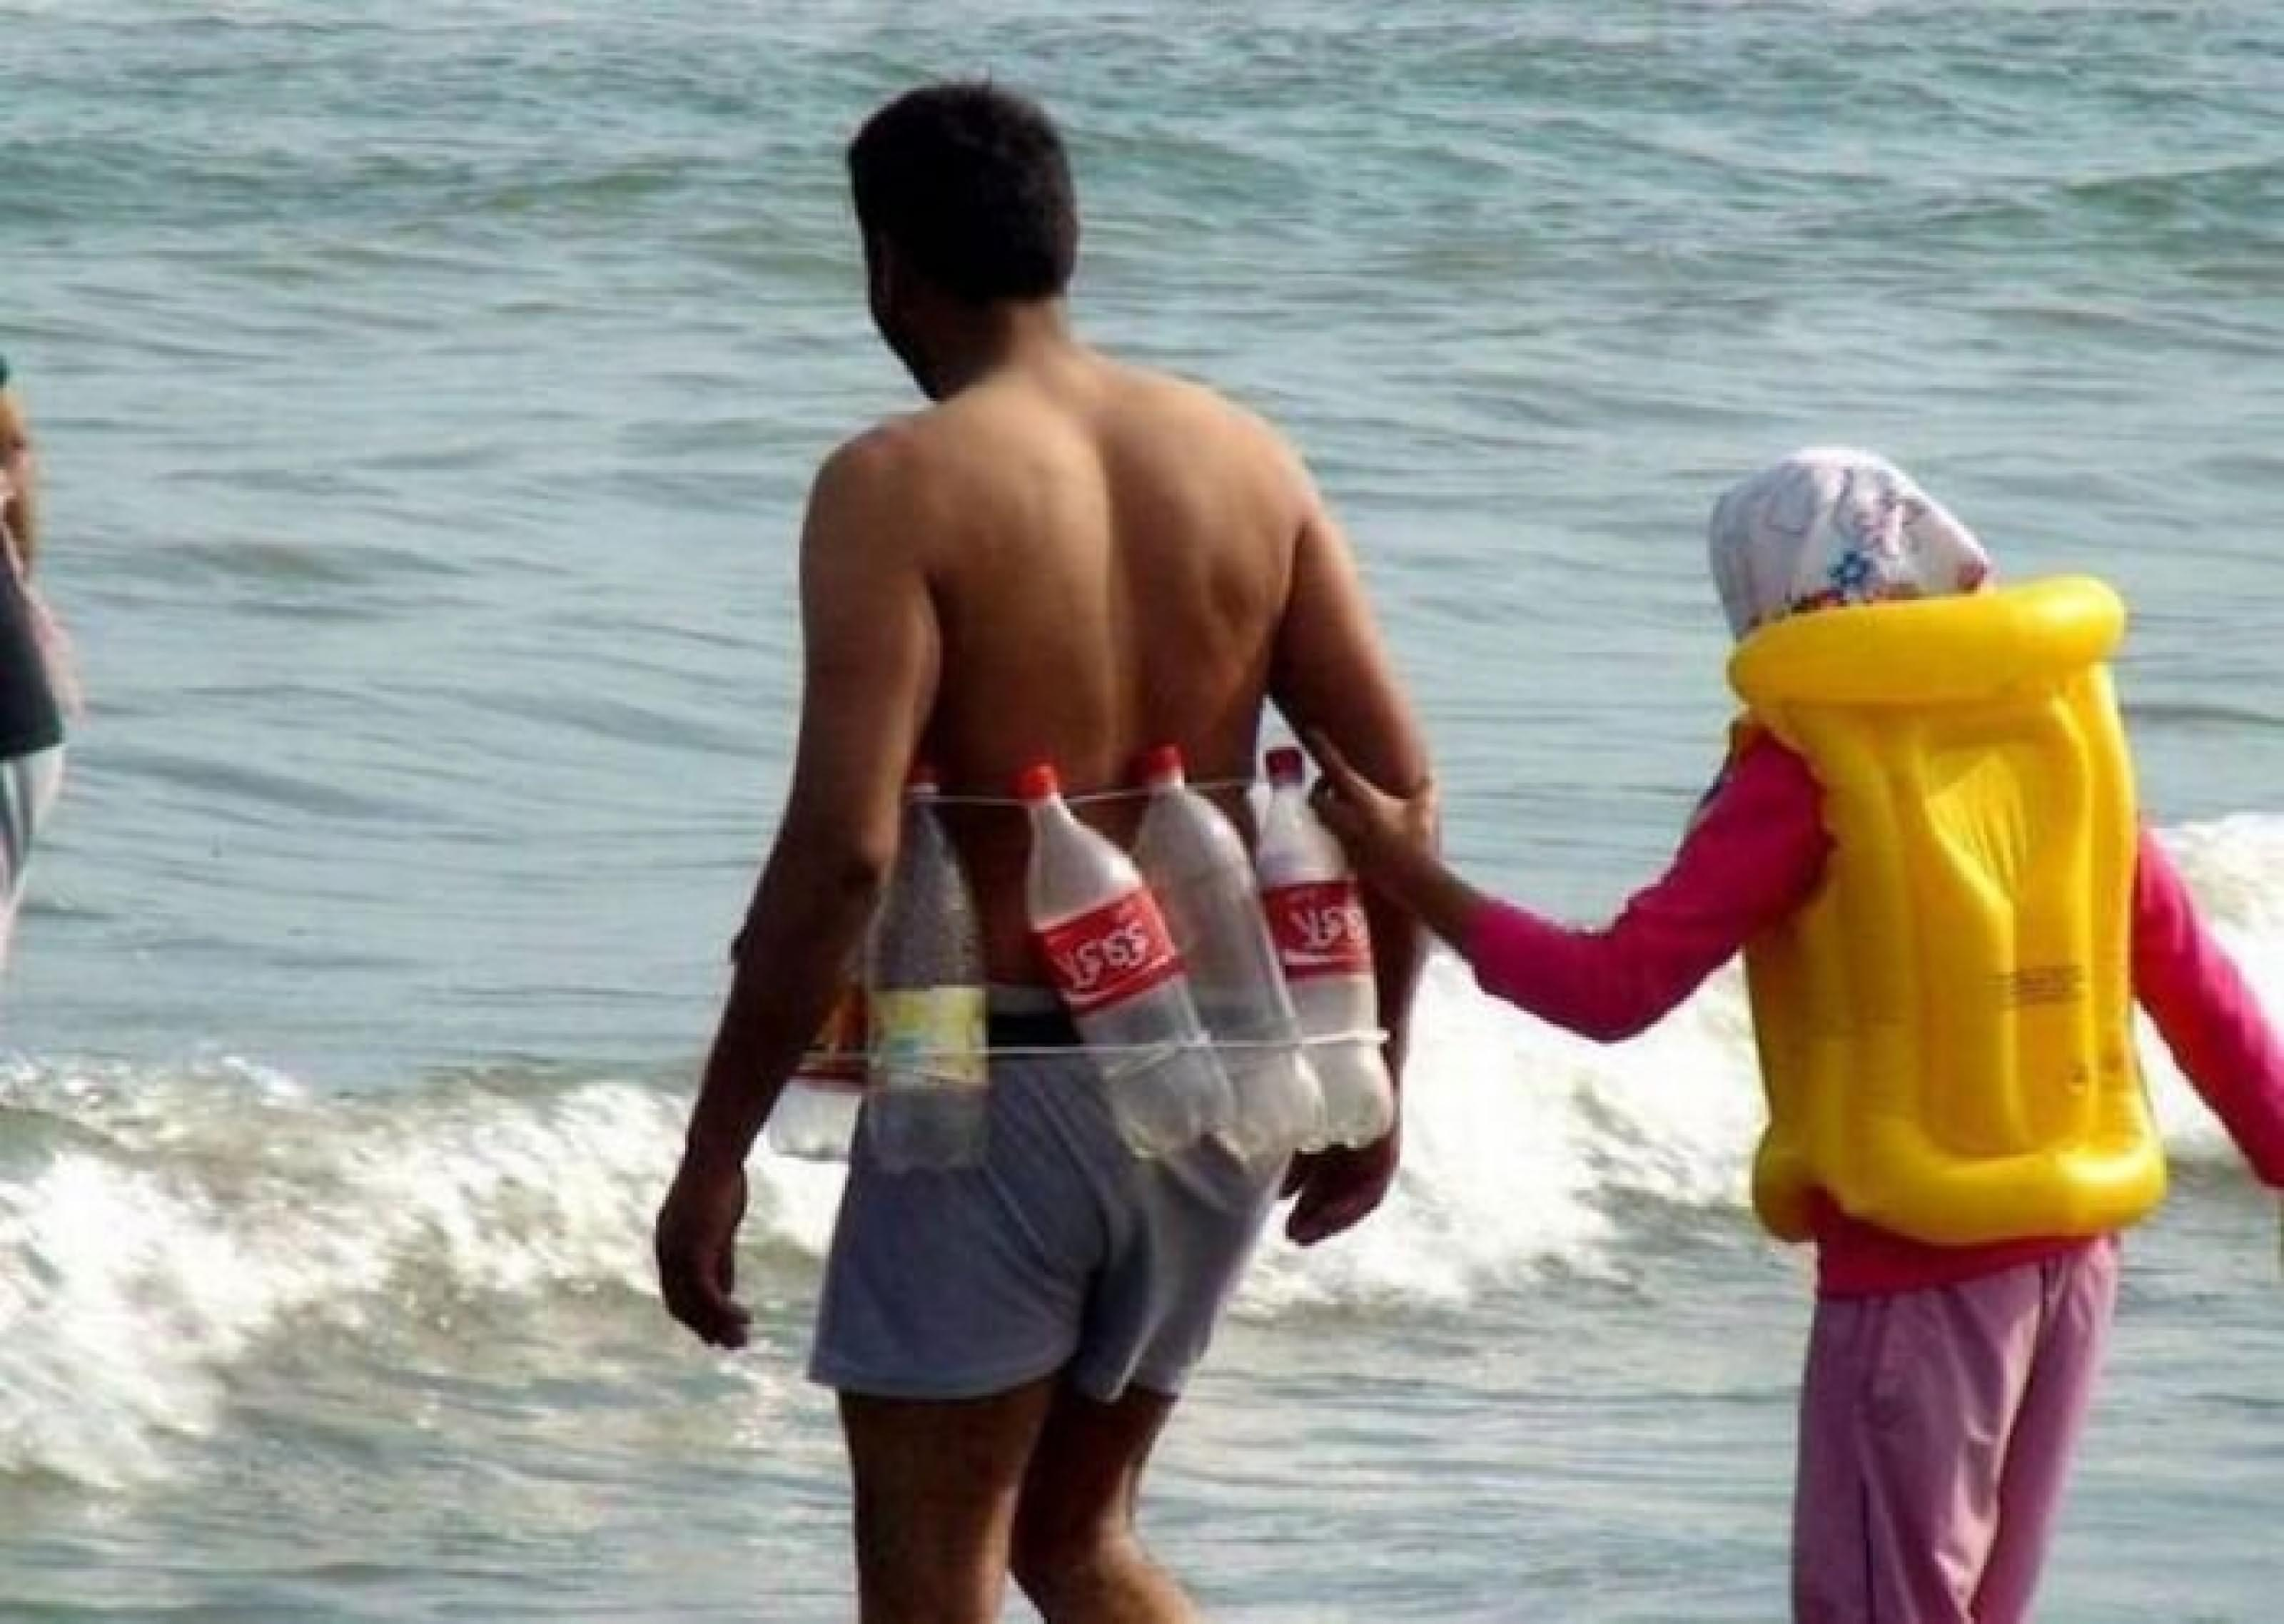 Funny Safety On Beach Picture Bunch Of Funny Indian Photos That Will Surely Make Your Day (19 Images)